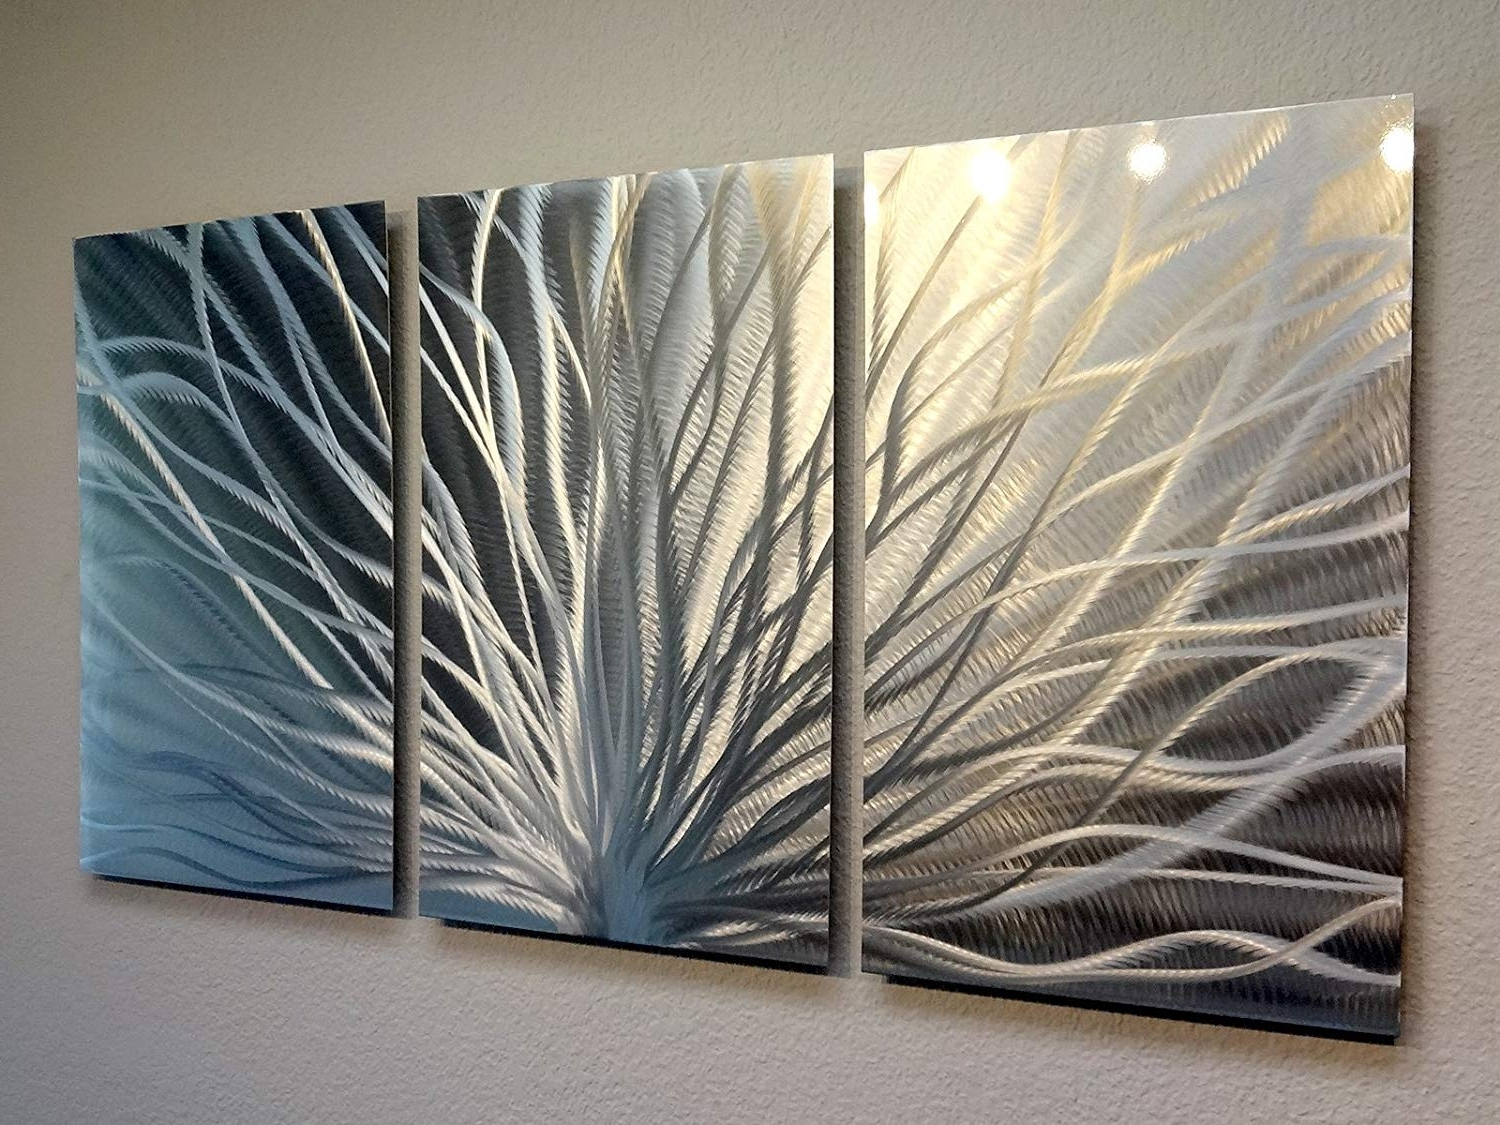 Contemporary Wall Art Decors Inside Recent Amazon: Miles Shay Metal Wall Art, Modern Home Decor, Abstract (View 3 of 15)